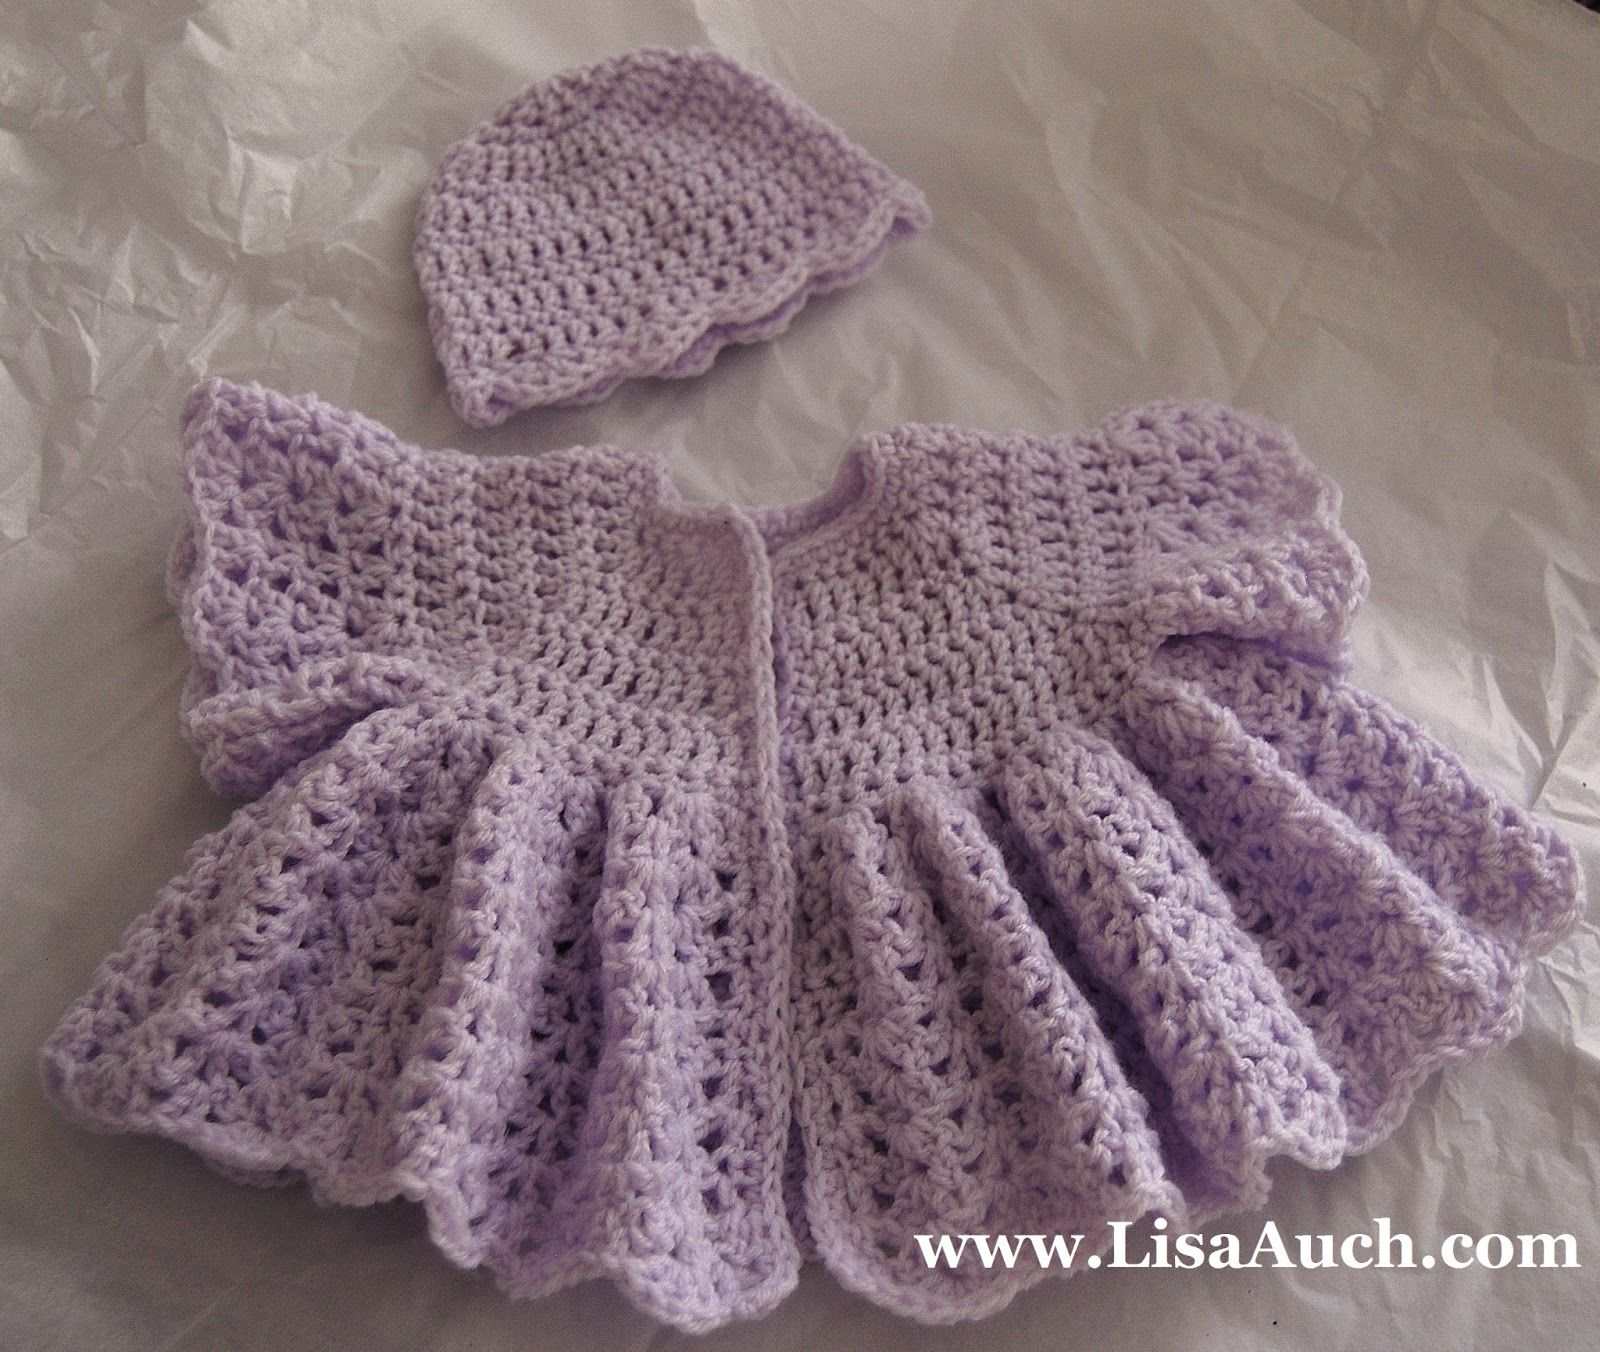 Crochet Baby Hat And Sweater Pattern : Free Crochet Patterns-crochet baby layette patterns-baby ...